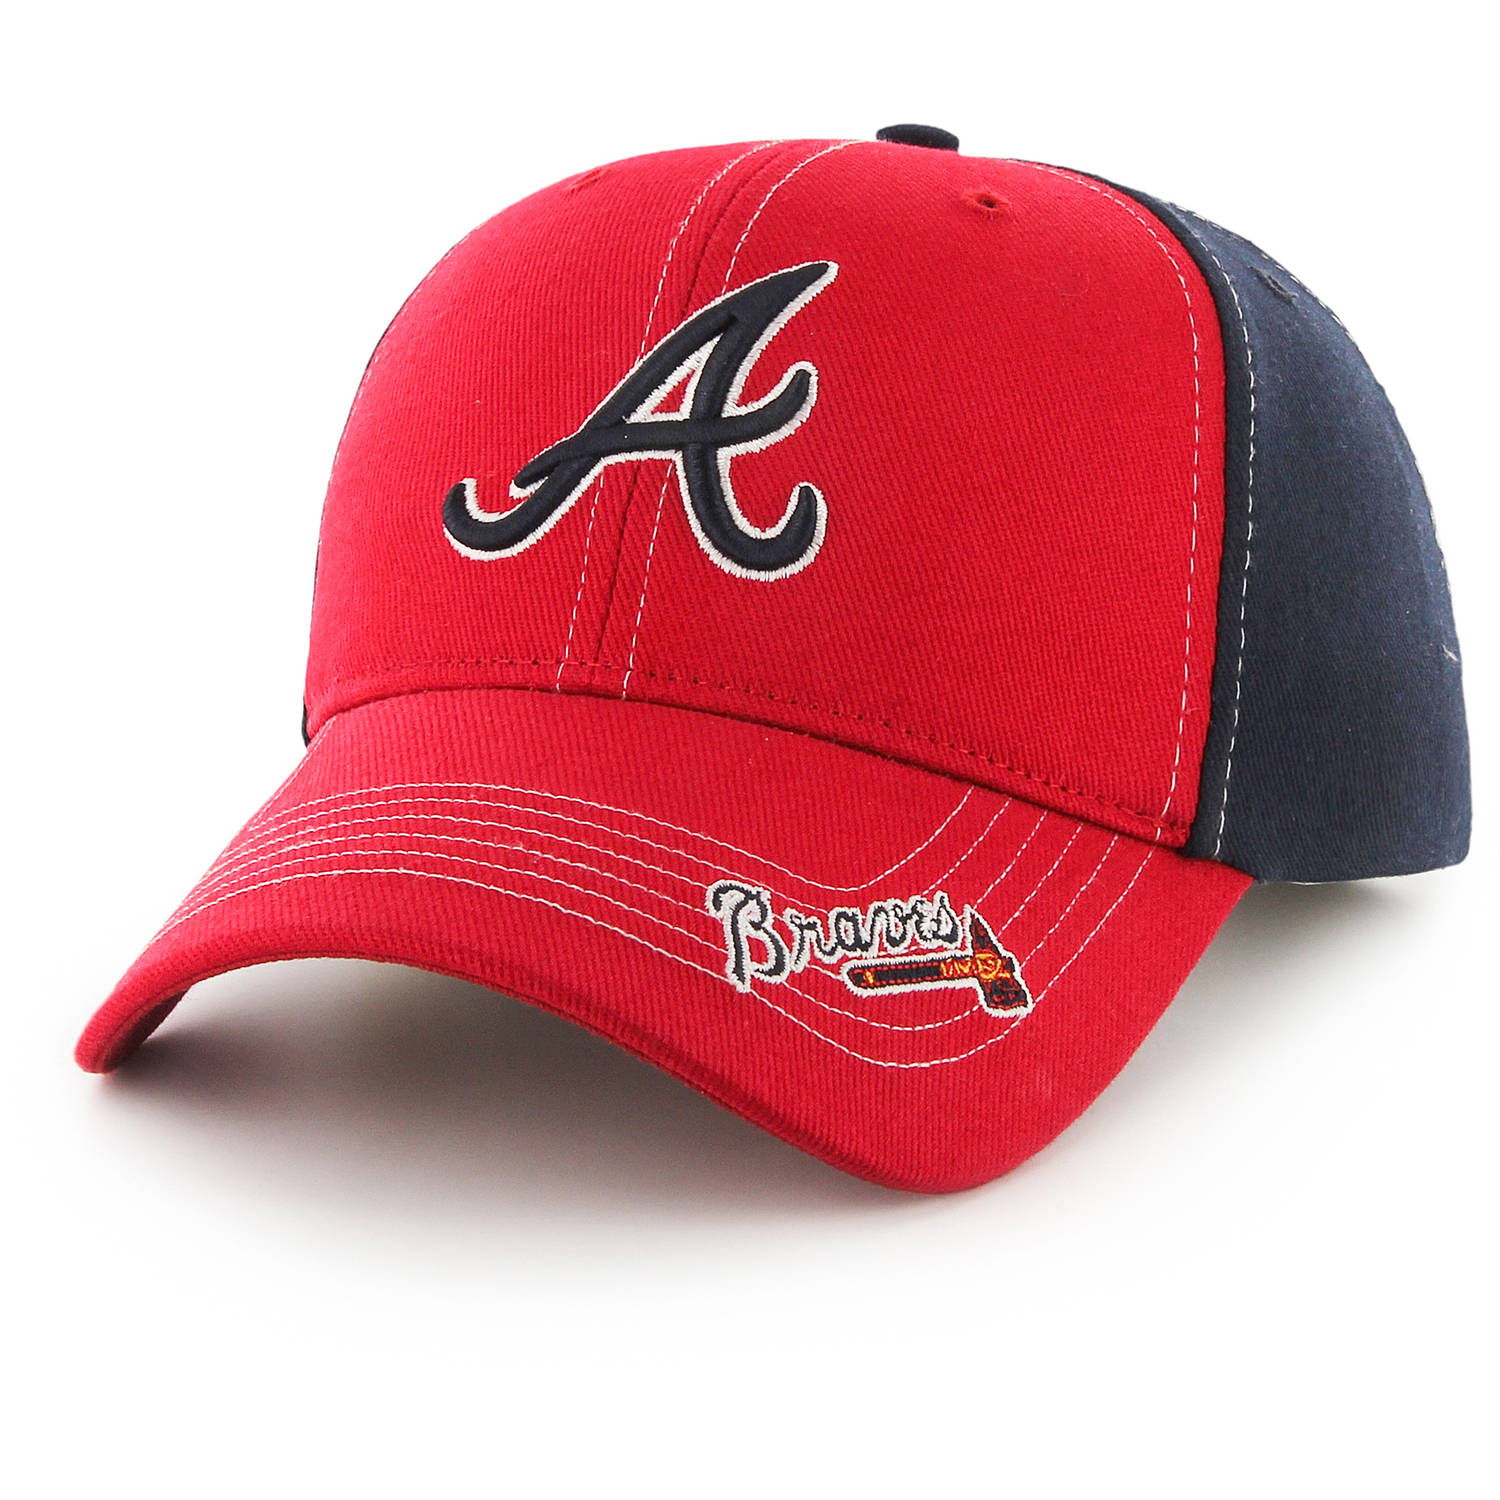 MLB Atlanta Braves Revolver Cap / Hat by Fan Favorite